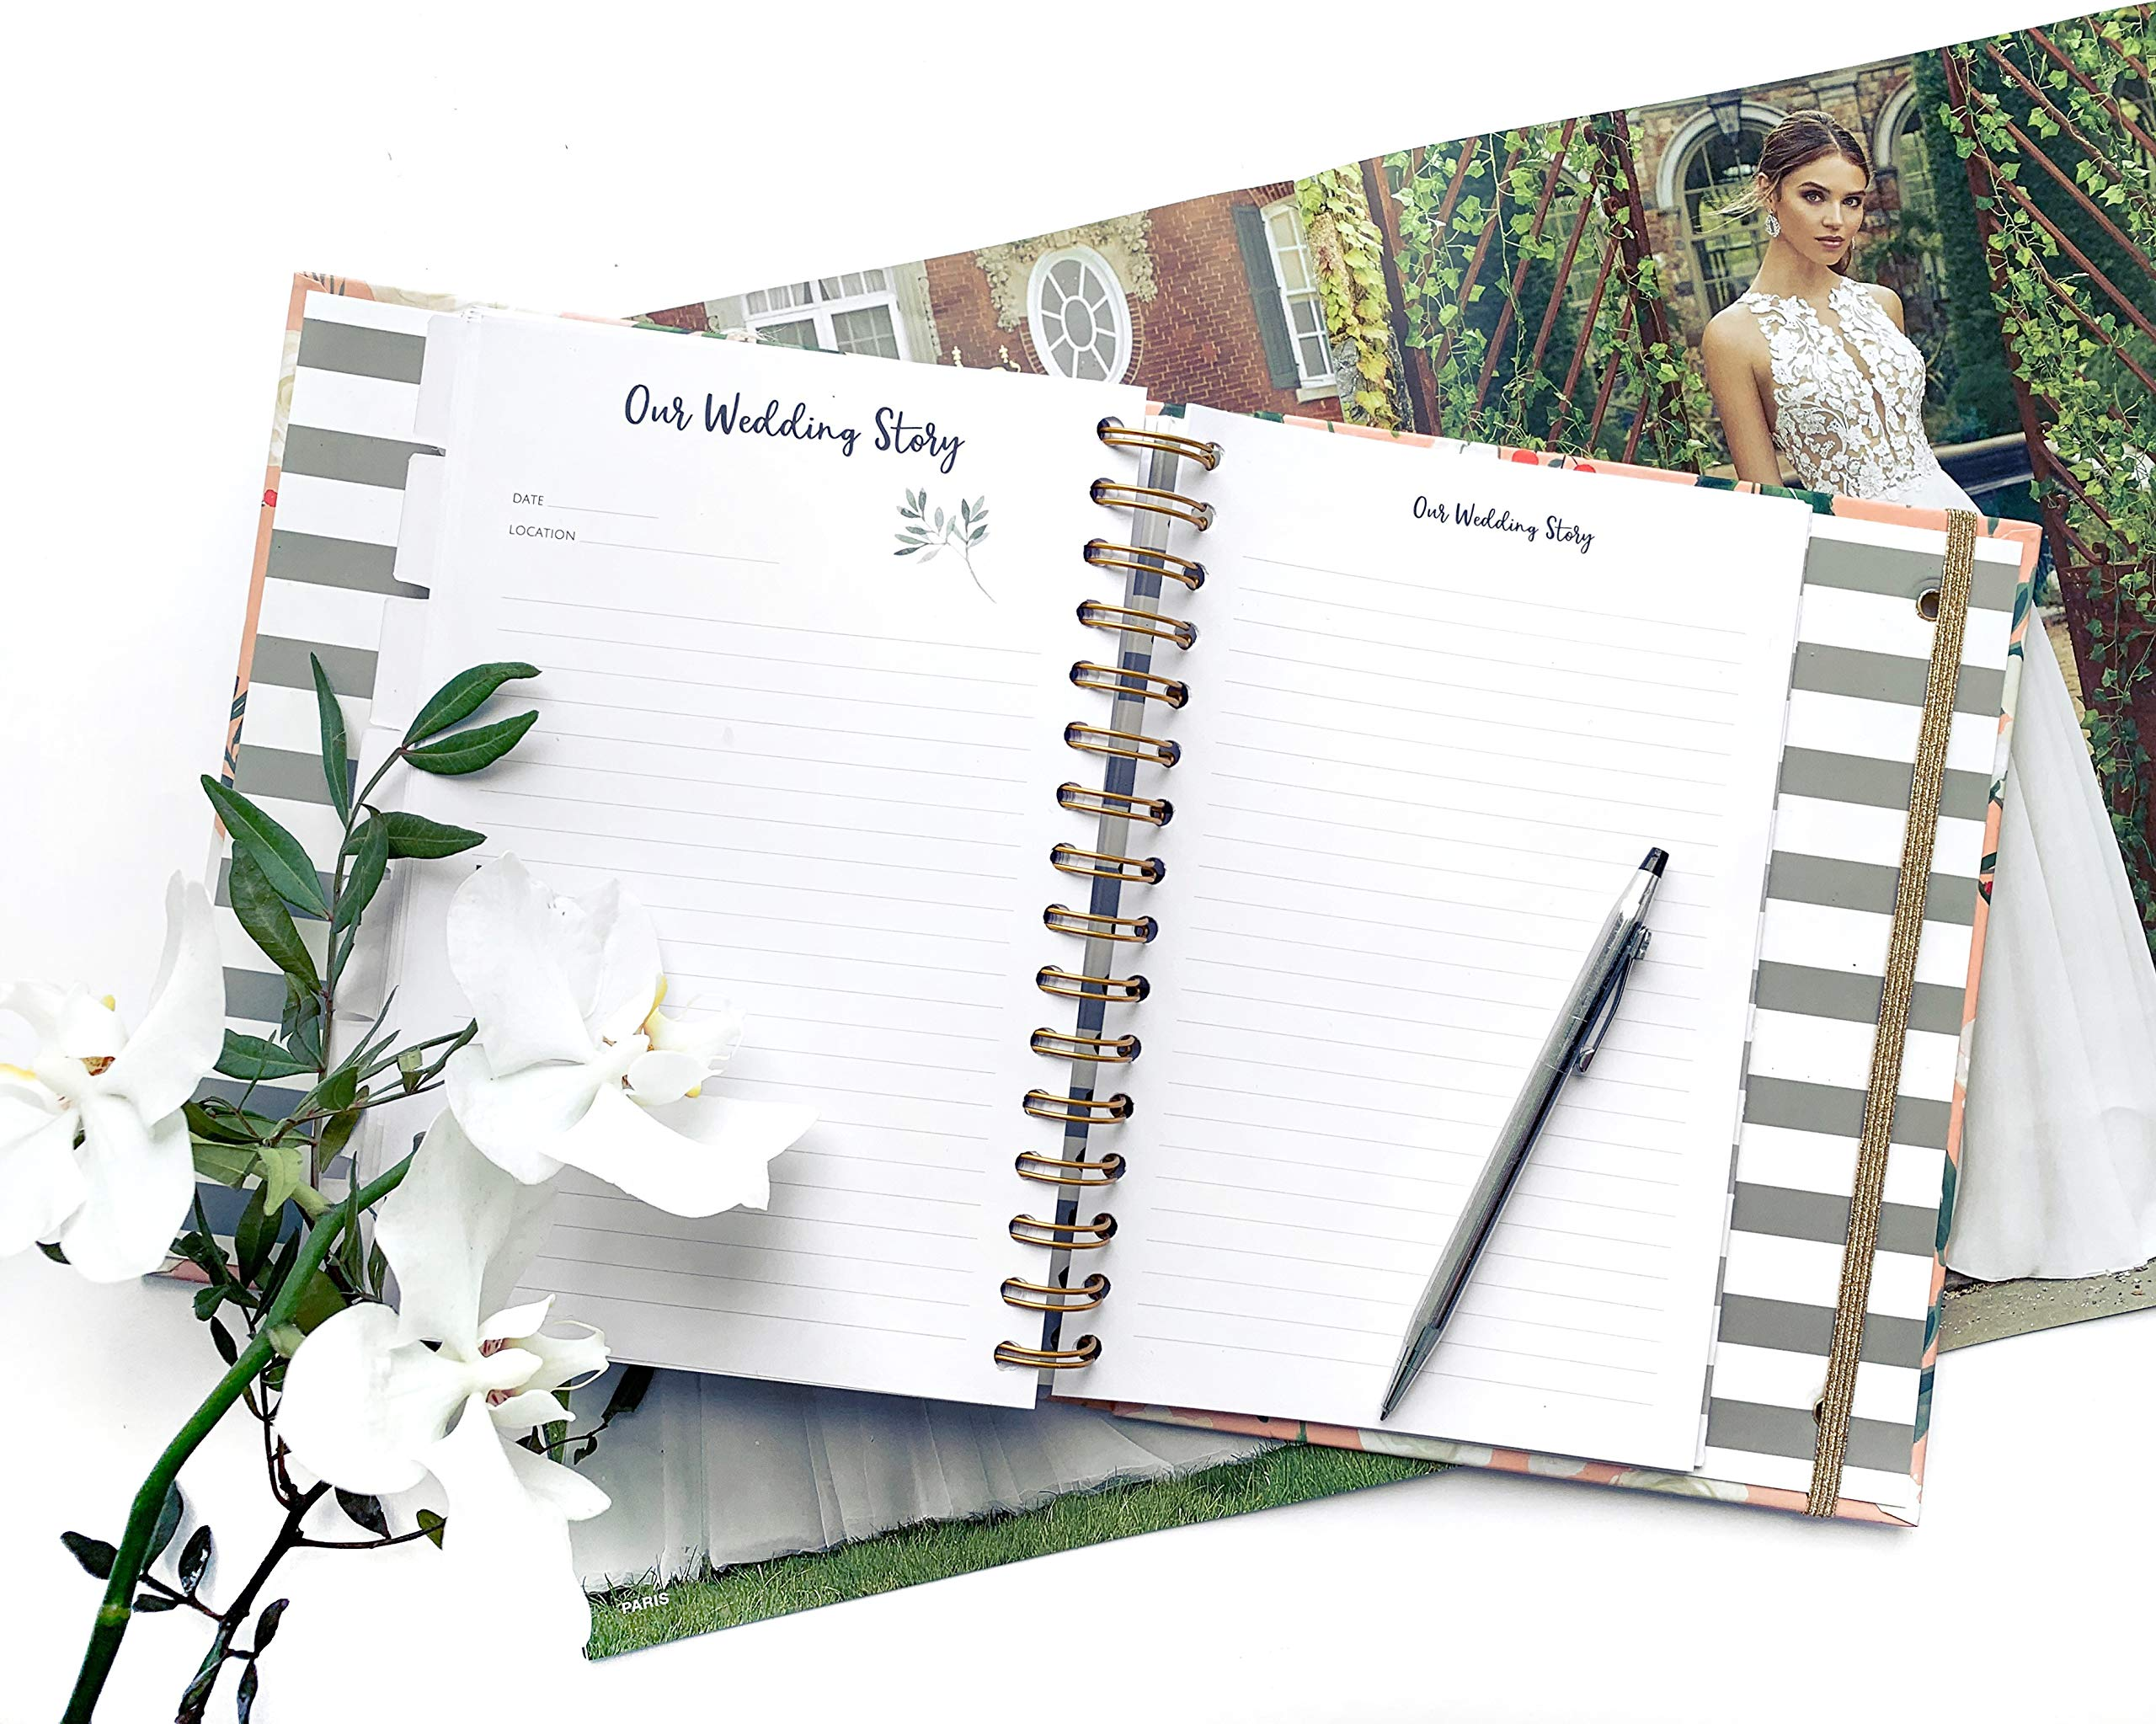 The Dream Wedding Planner | Luxury Wedding Organizer Book with Beautiful Souvenir Gift Box | Ideal Engagement Present for Couples | Perfect for Planning Your Dream Wedding by The Caledonia Design Co. (Image #7)